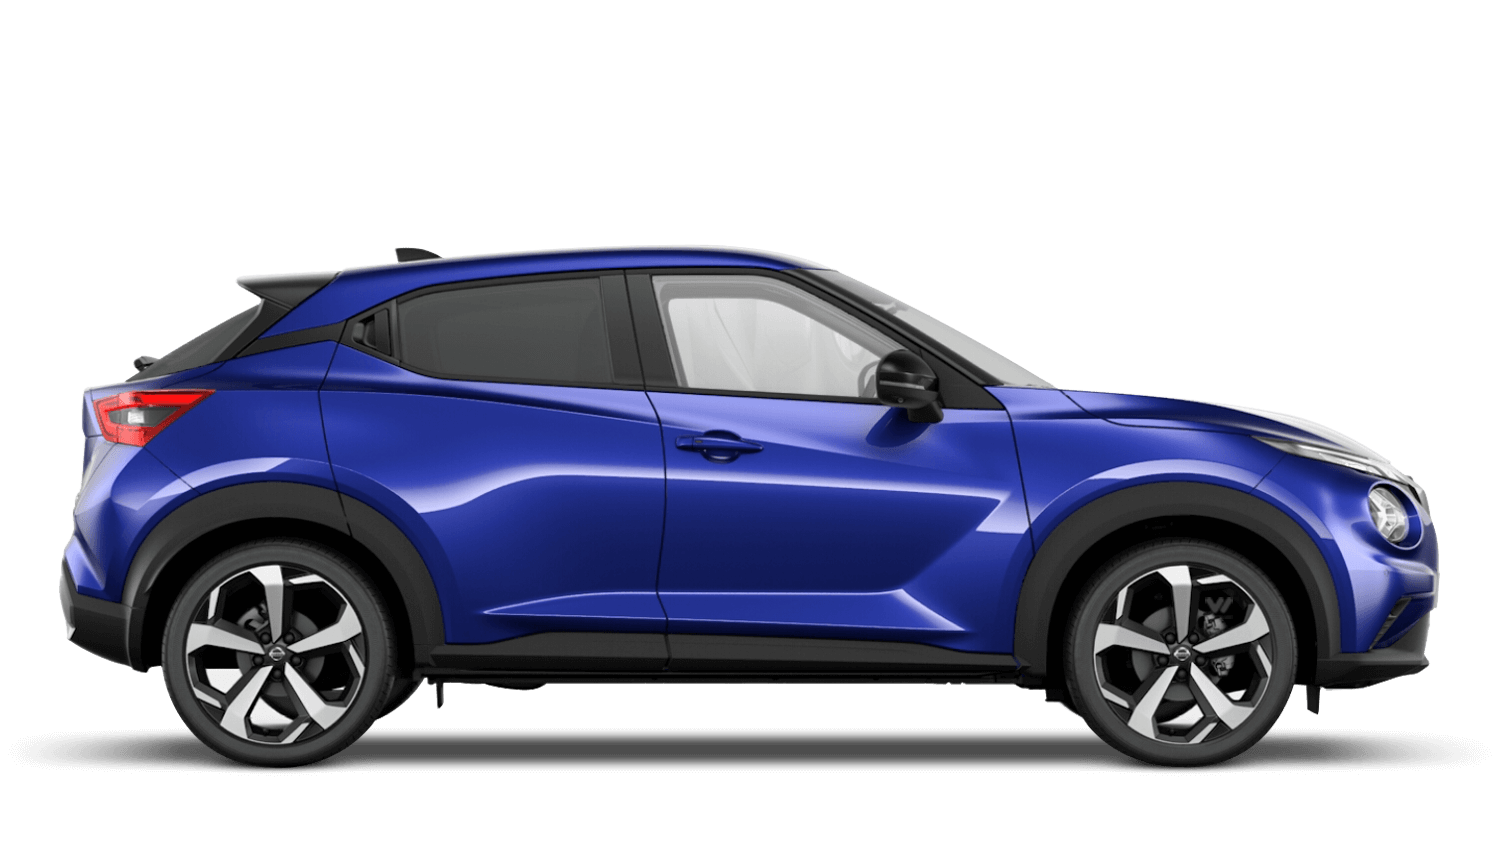 Ink Blue Next Generation Nissan Juke